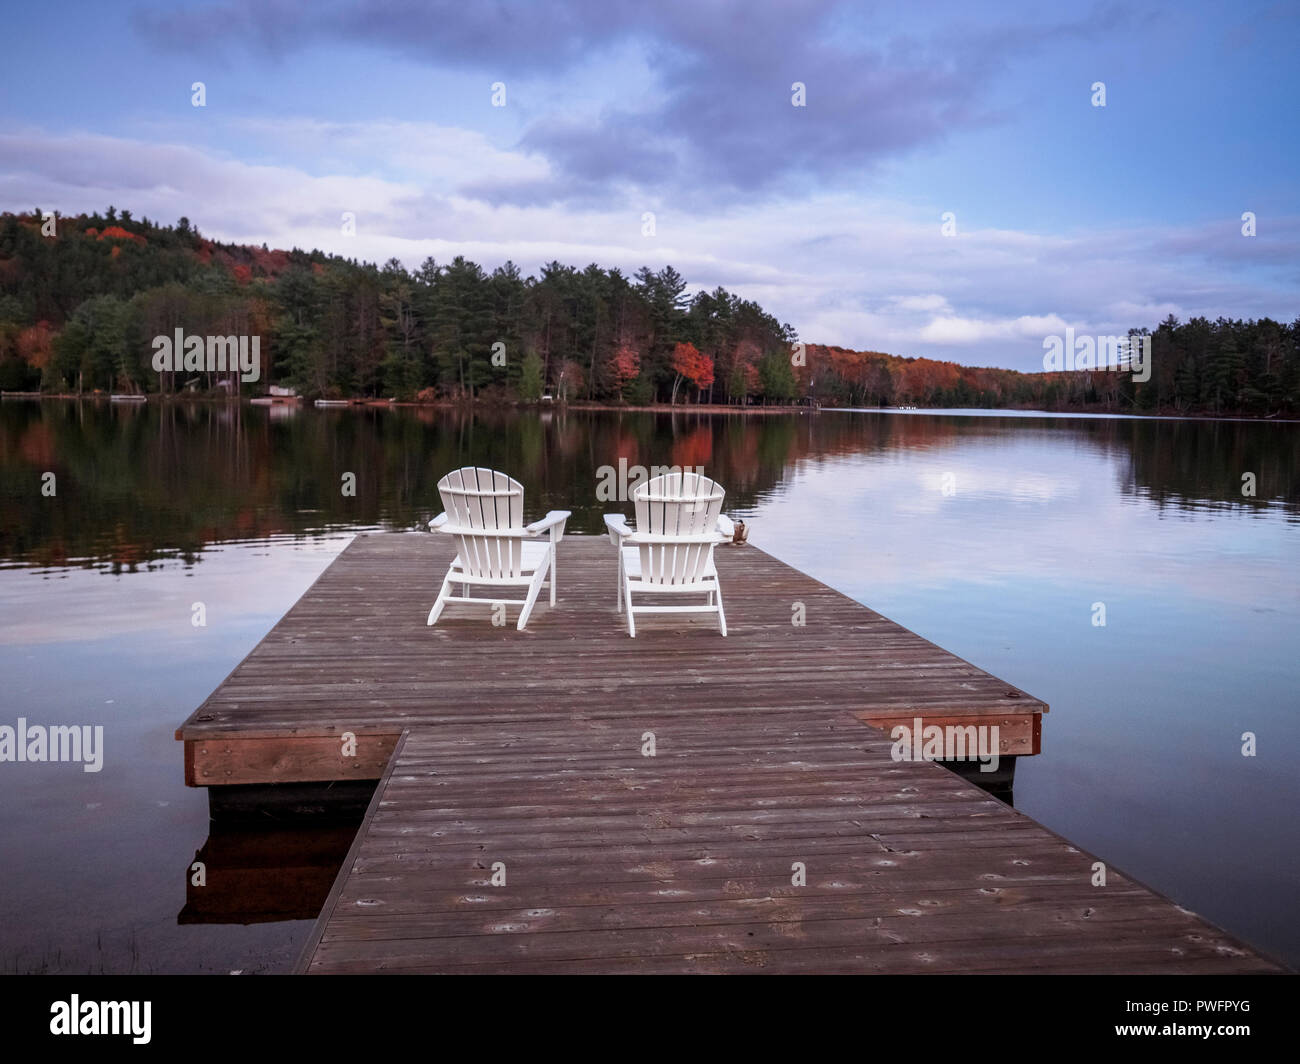 Two Muskoka Chairs in front of lake Benoir, Ontario on a wooden dock. The calm lake water produces stunning reflections. - Stock Image